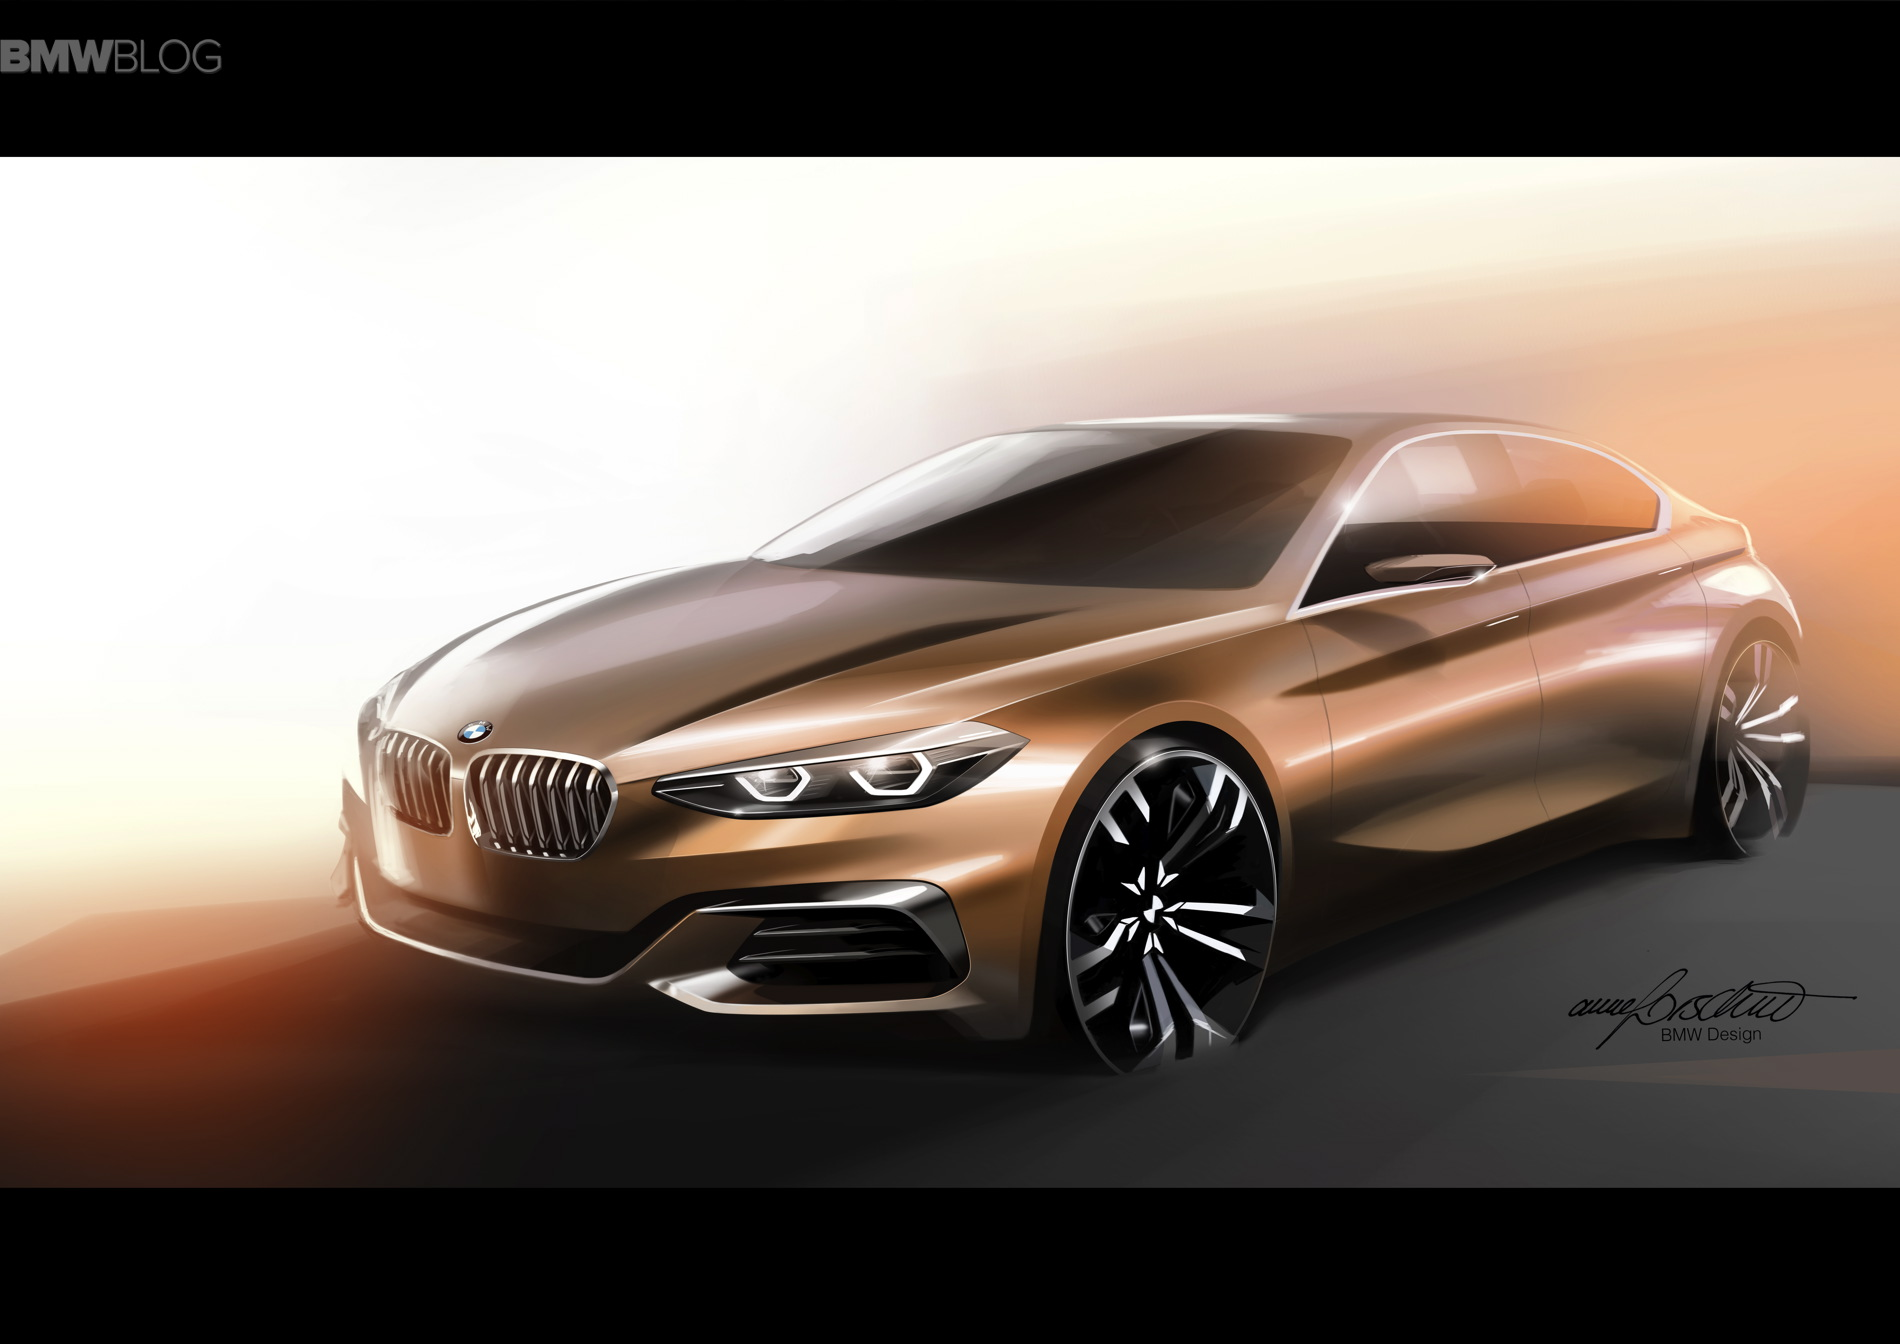 BMW is preparing to produce a 1-series sedan 2017 model year 81